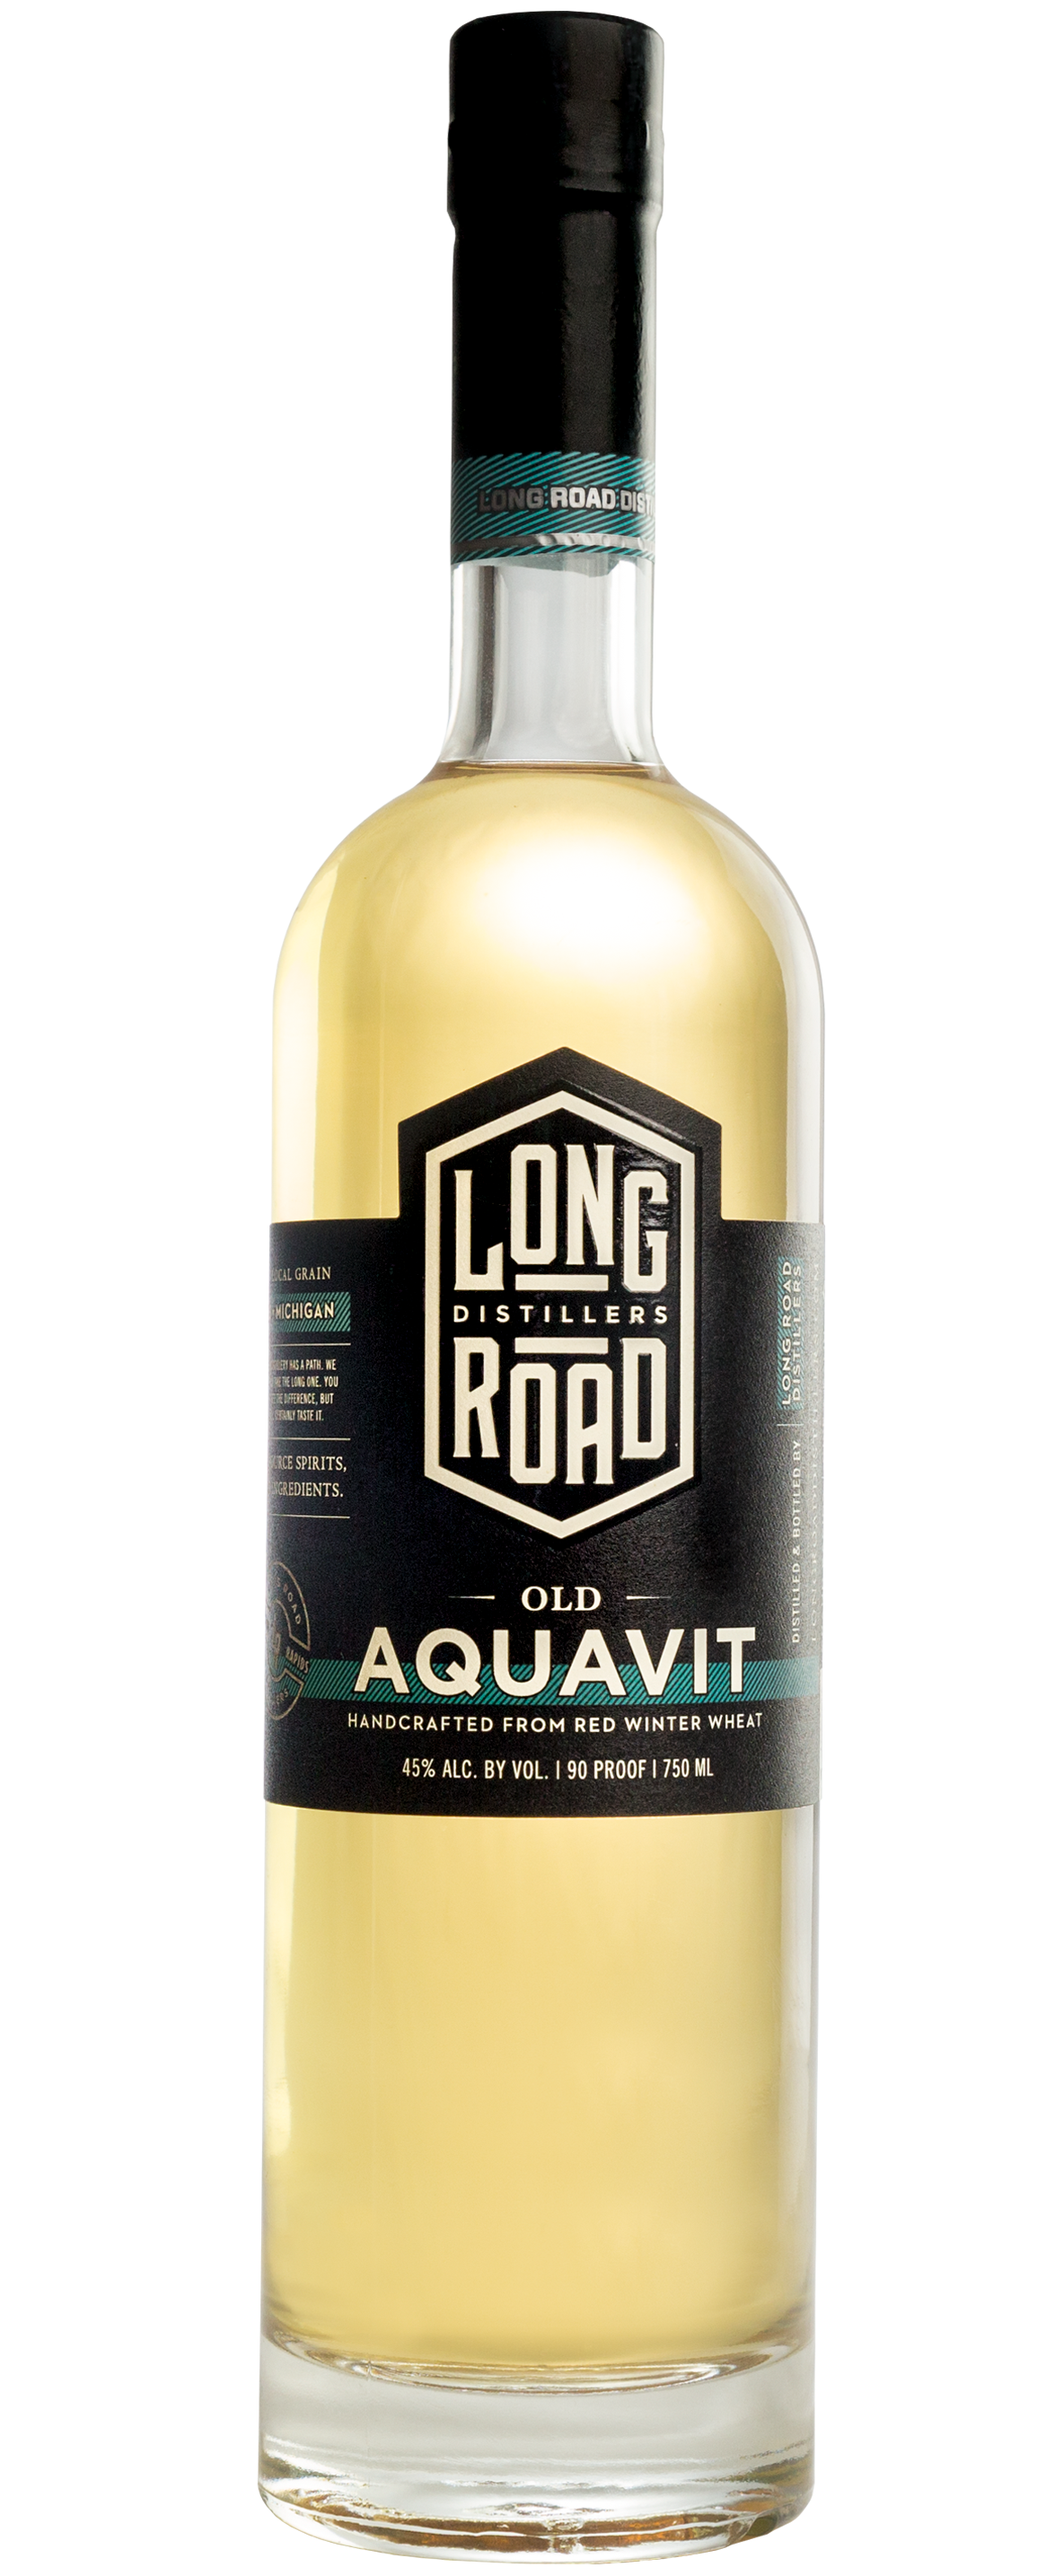 Old Aquavit Long Road Distillers